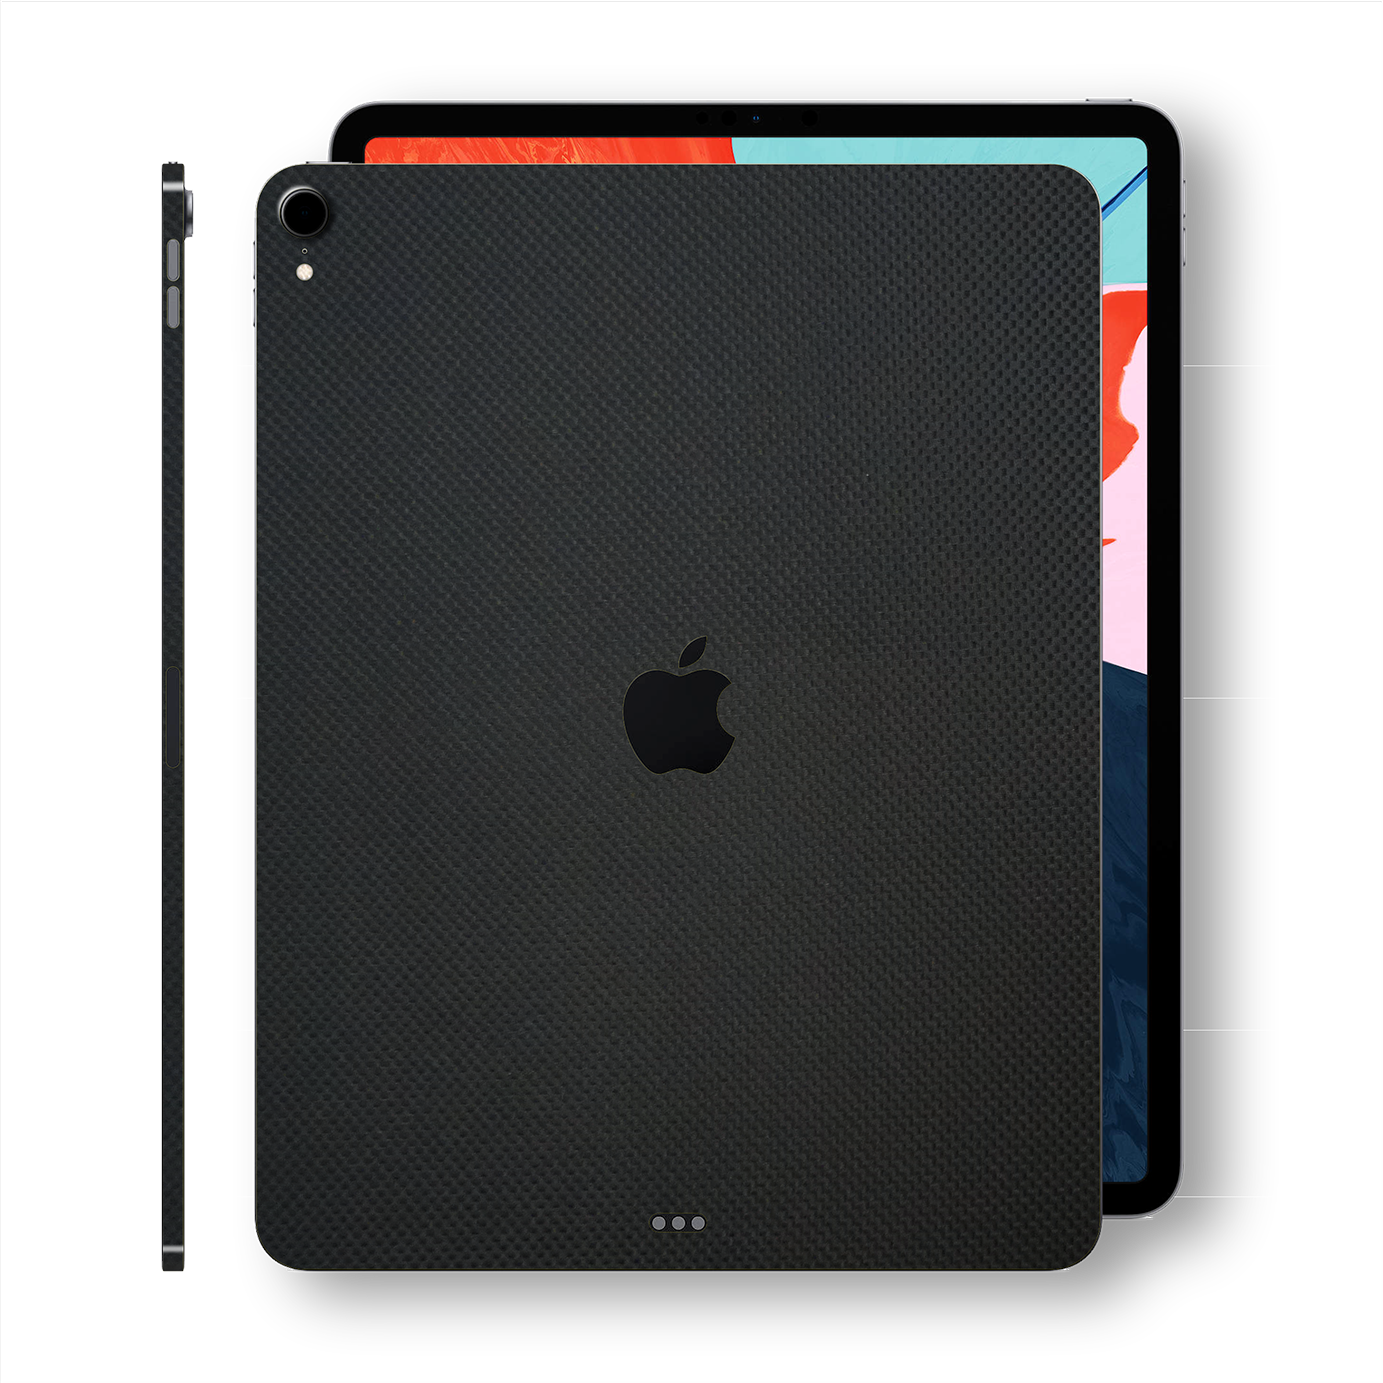 "iPad PRO 12.9"" 3rd Generation 2018 MICRO 3D Textured Black CARBON Fibre Fiber Skin Wrap Sticker Decal Cover Protector by EasySkinz"